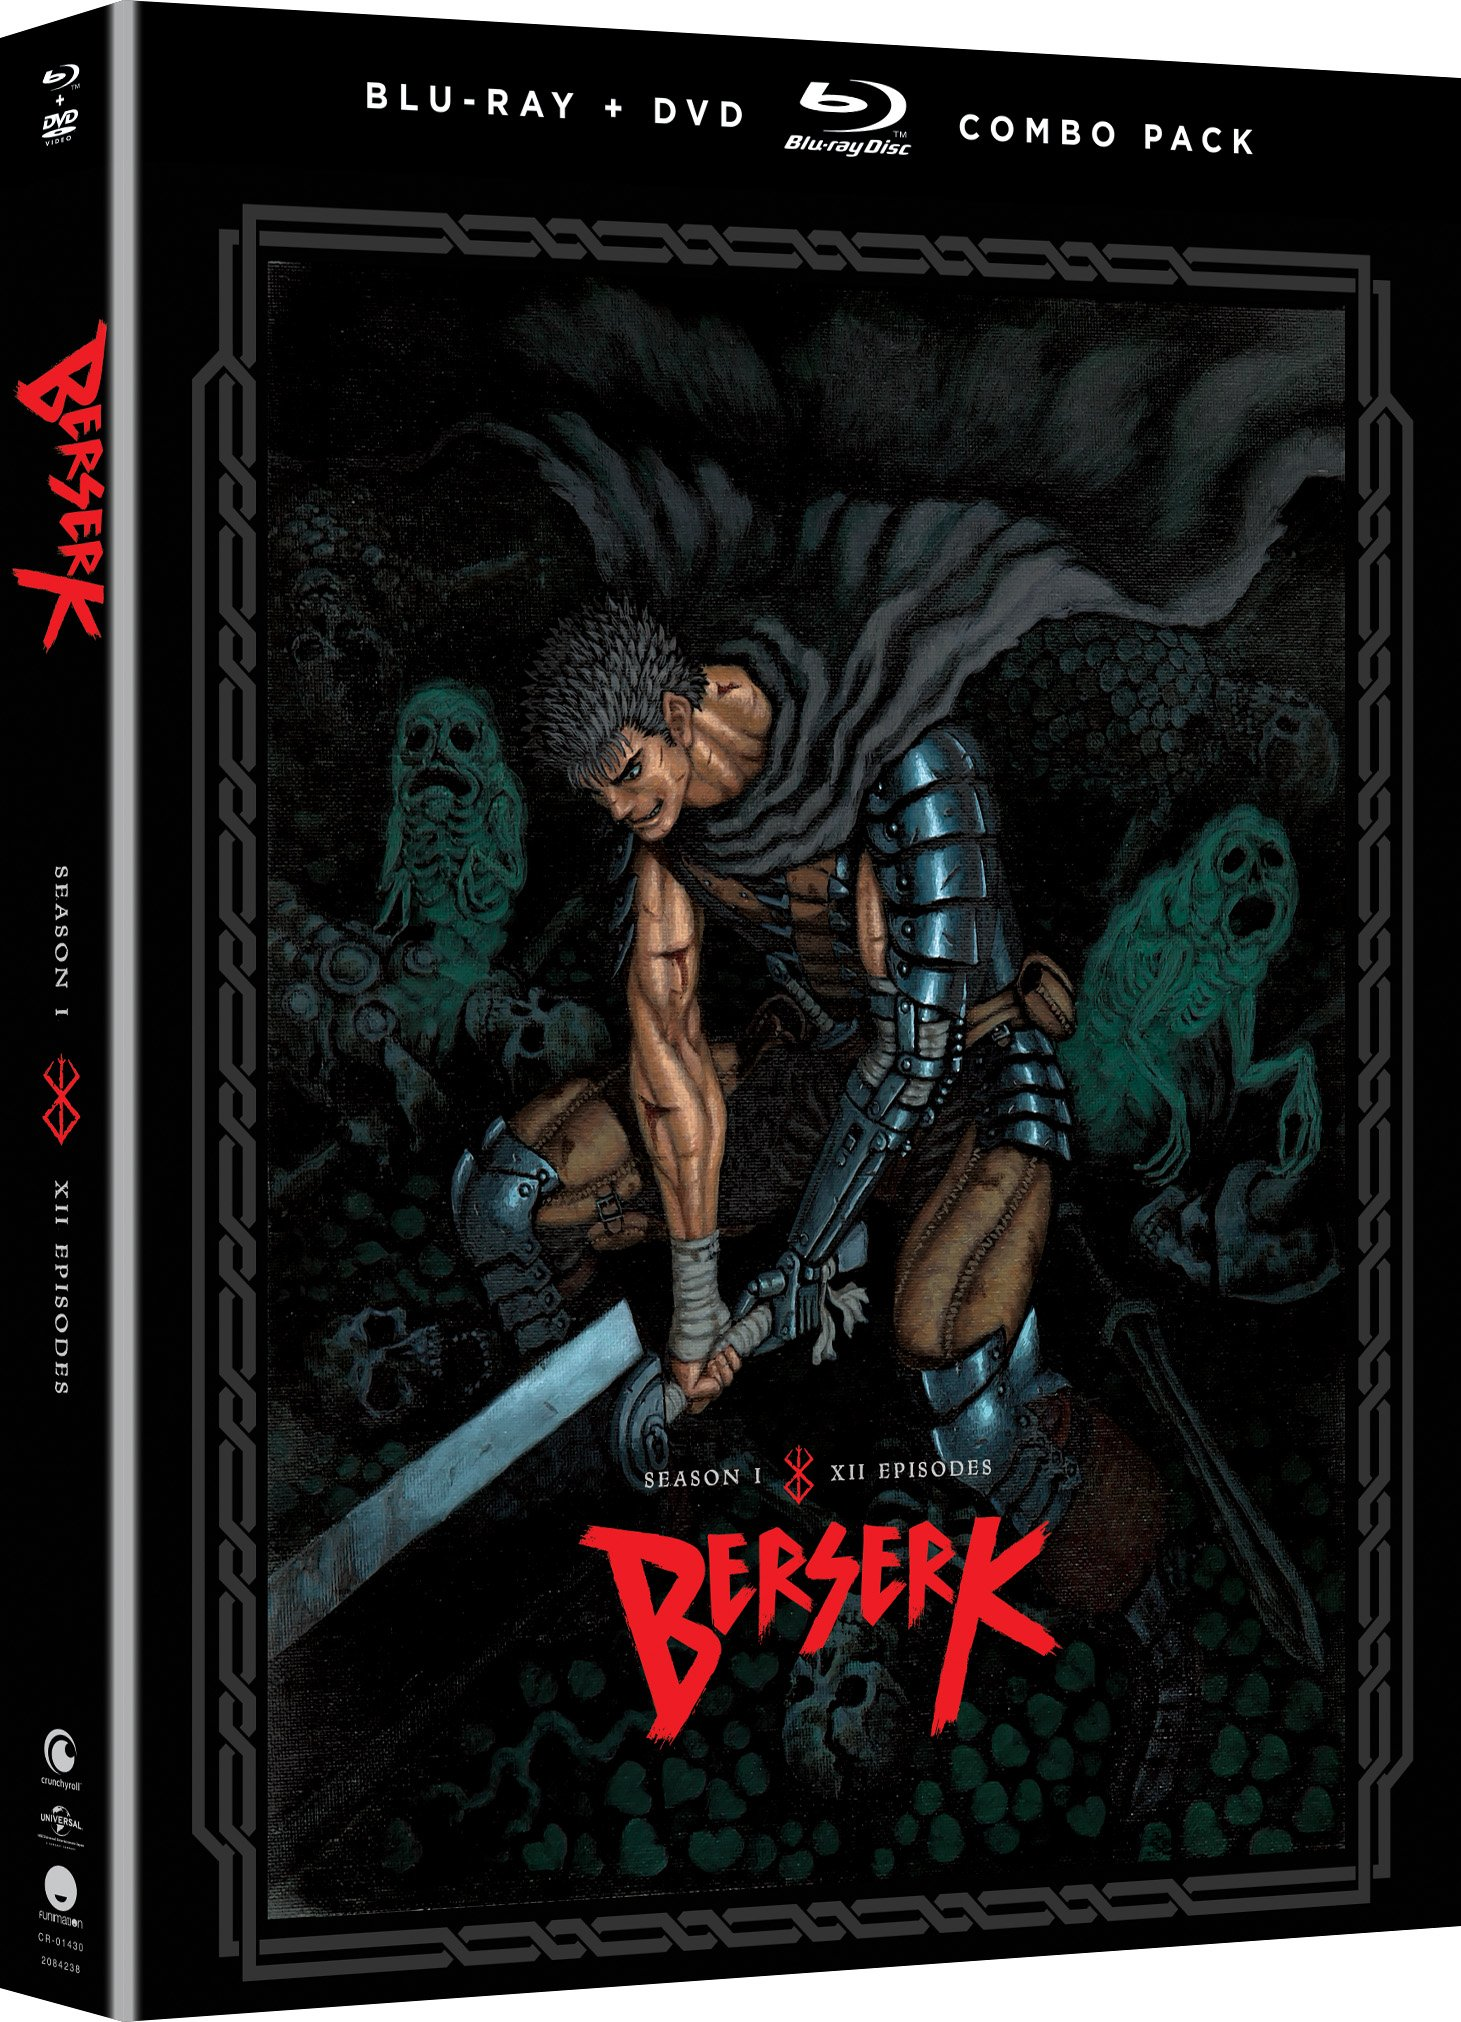 Blu-ray : Berserk: Season One (With DVD, Boxed Set, 4 Disc)